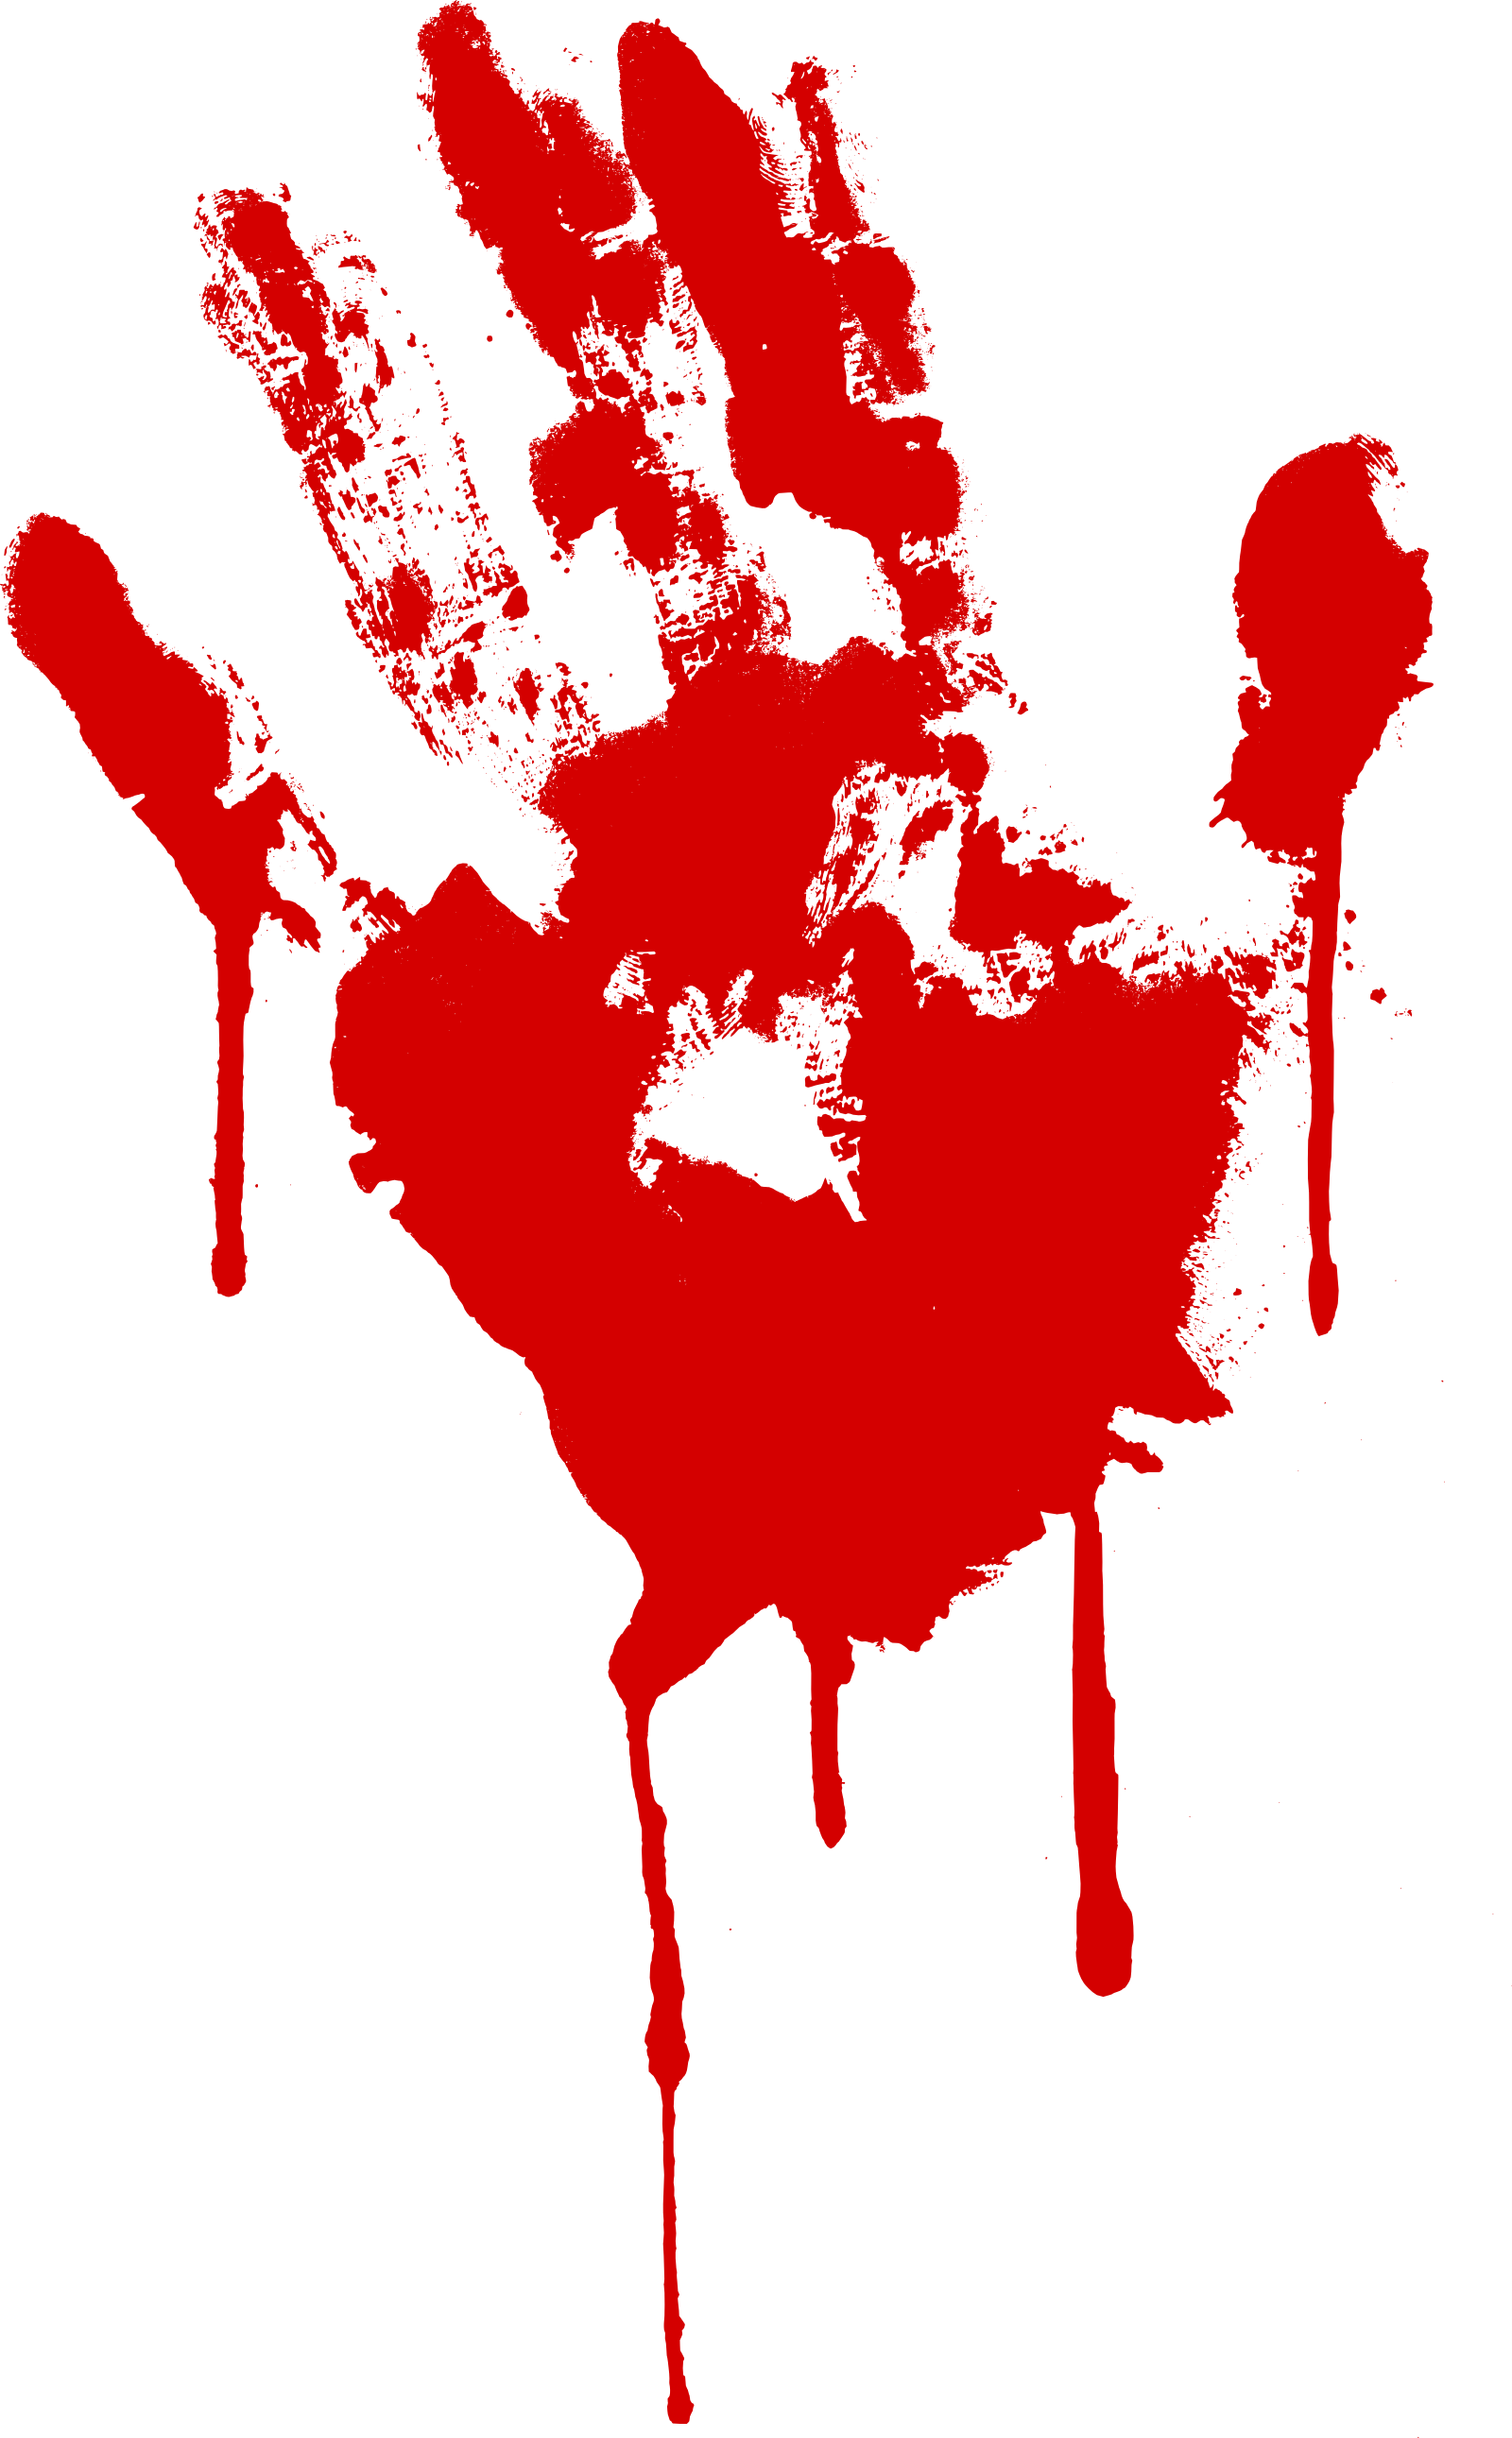 bloody png onlygfx. Handprint transparent red svg transparent download